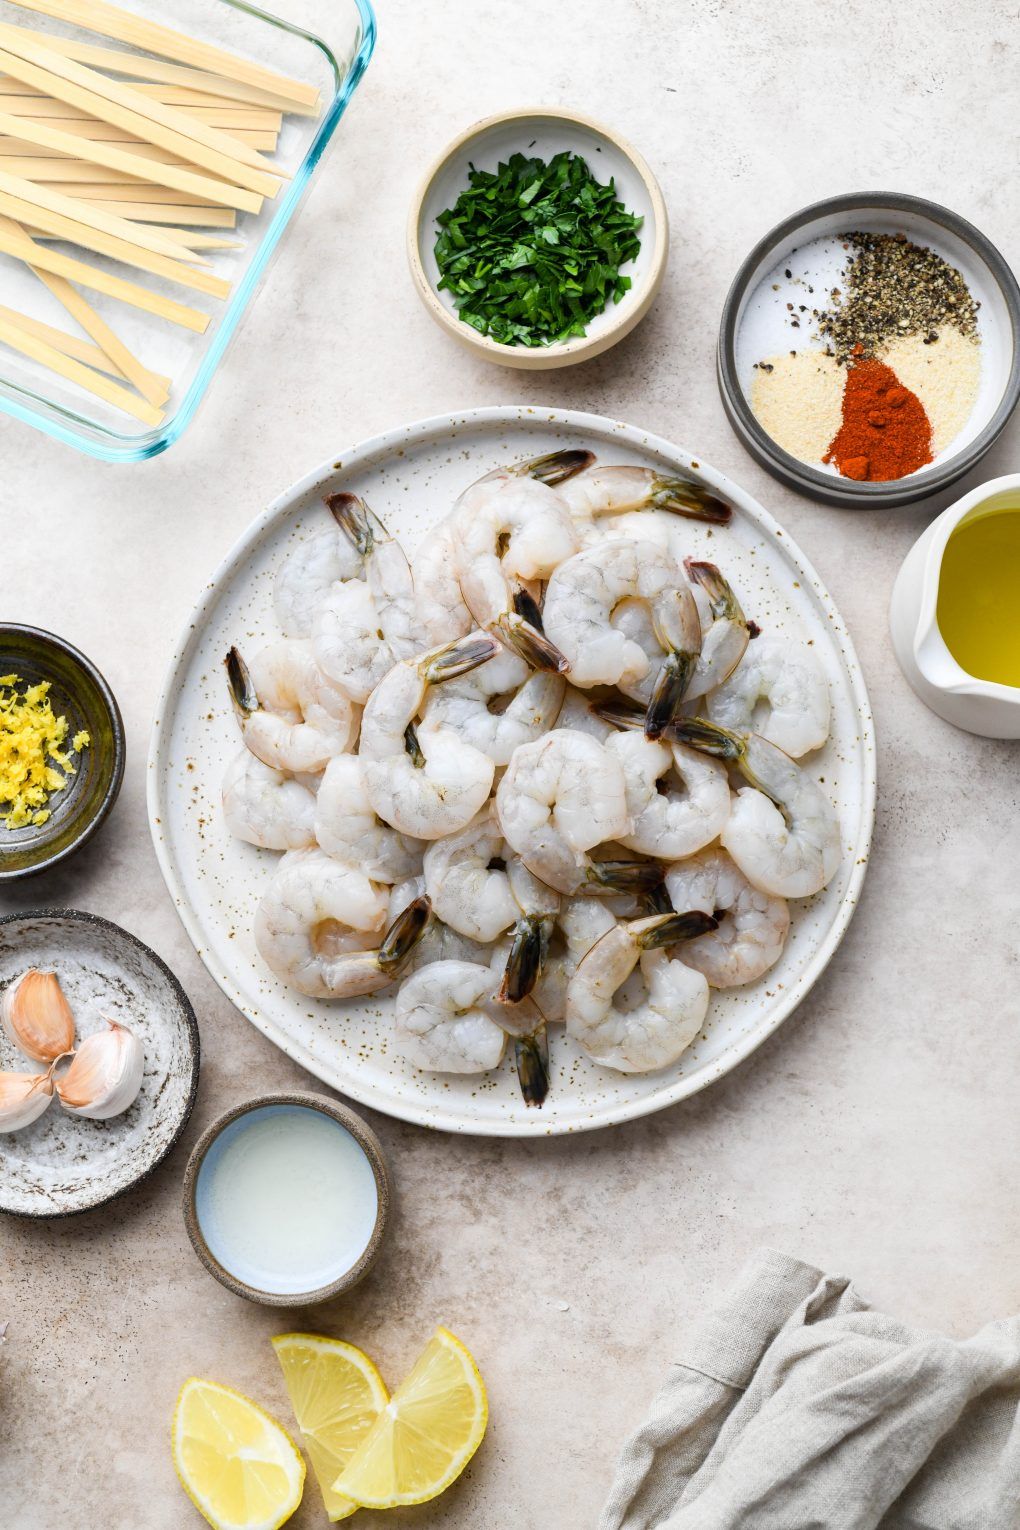 All of the ingredients for garlicky grilled shrimp skewers. Raw tail on shrimp, spices, parsley, olive oil, garlic, lemon zest, and lemon juice. On a light colored background.